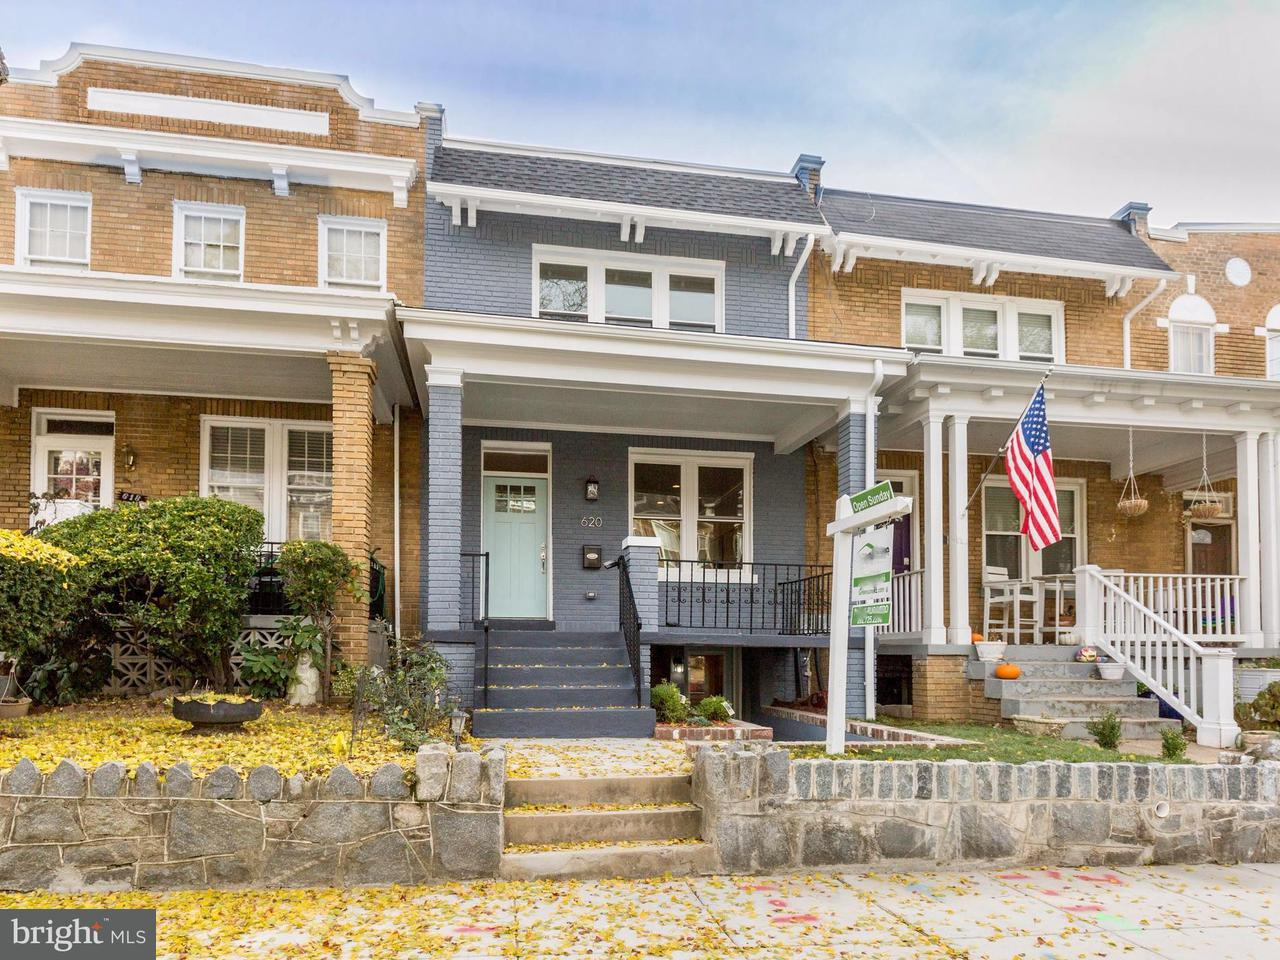 Townhouse for Sale at 620 DELAFIELD PL NW 620 DELAFIELD PL NW Washington, District Of Columbia 20011 United States